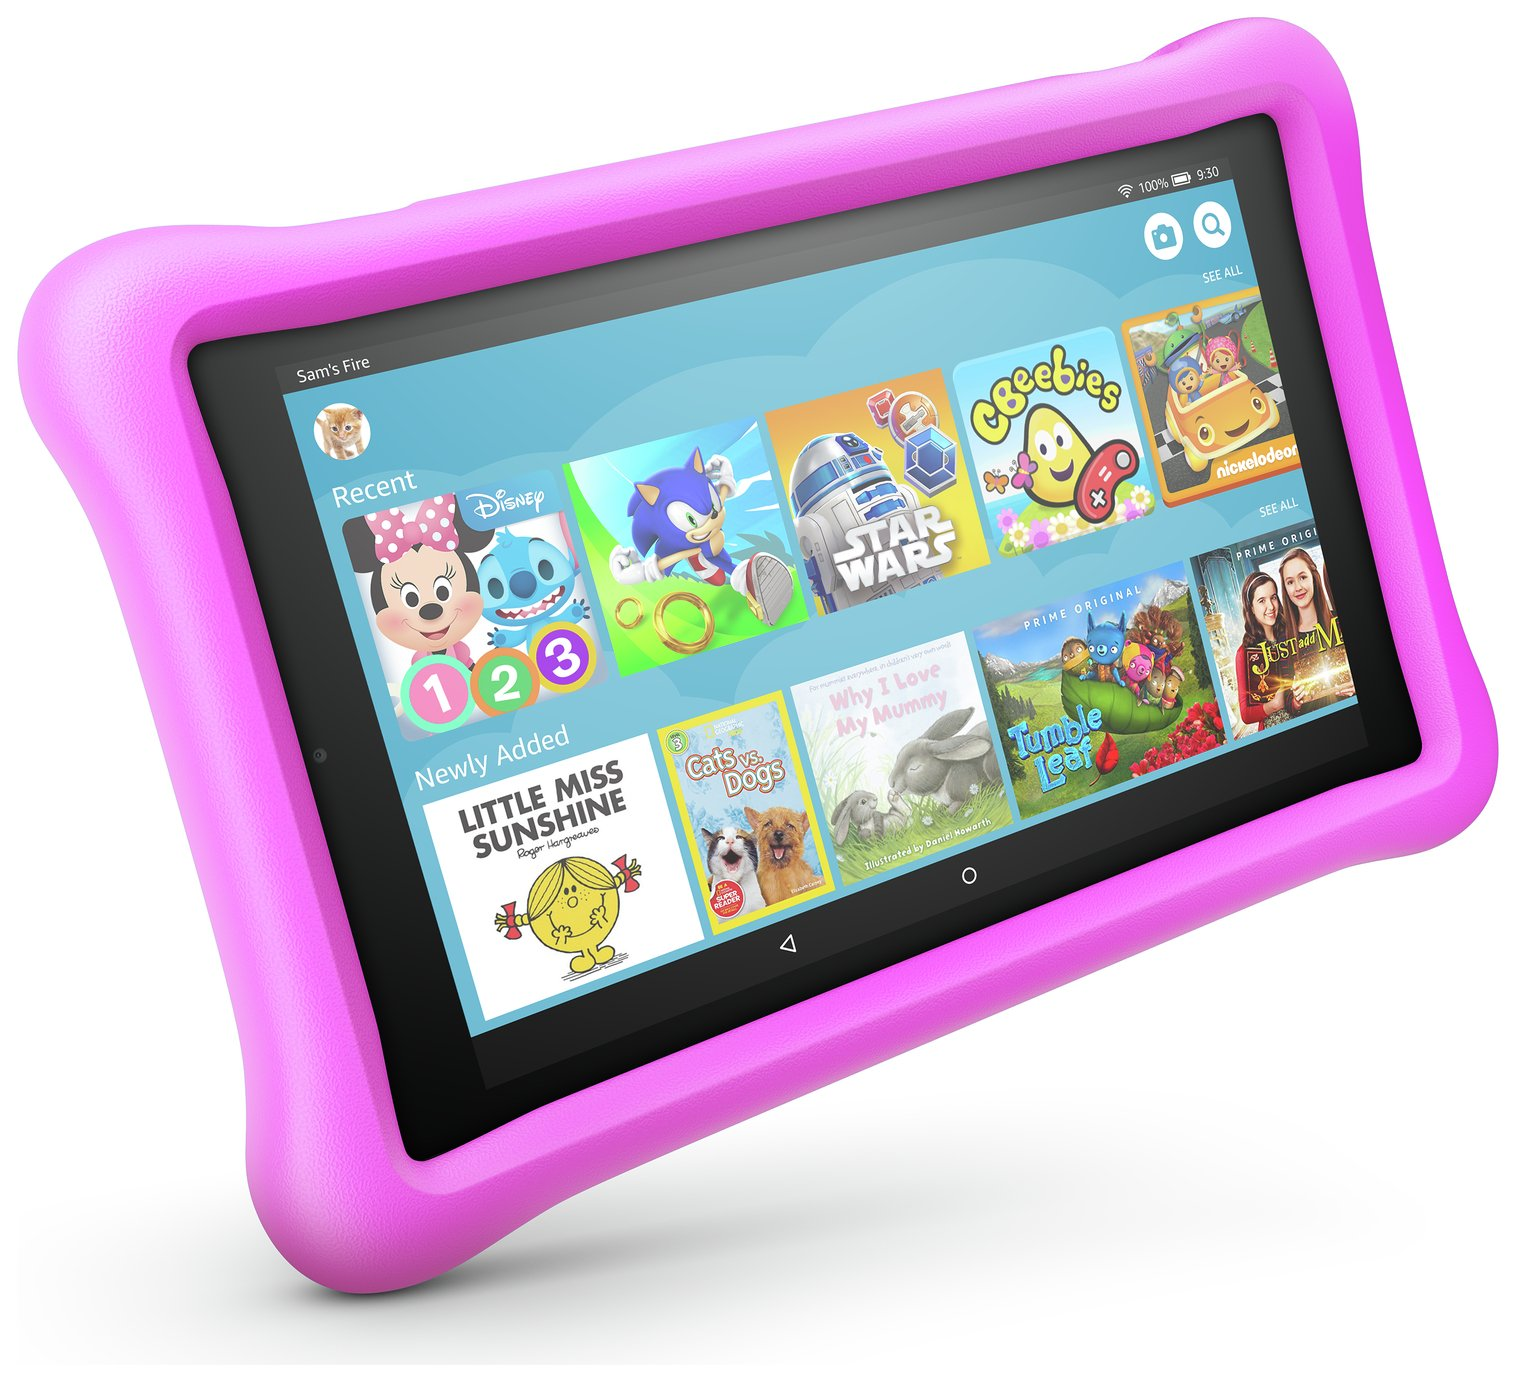 Amazon Fire 8 Kids Edition 8 Inch 32GB Tablet - Pink from Amazon